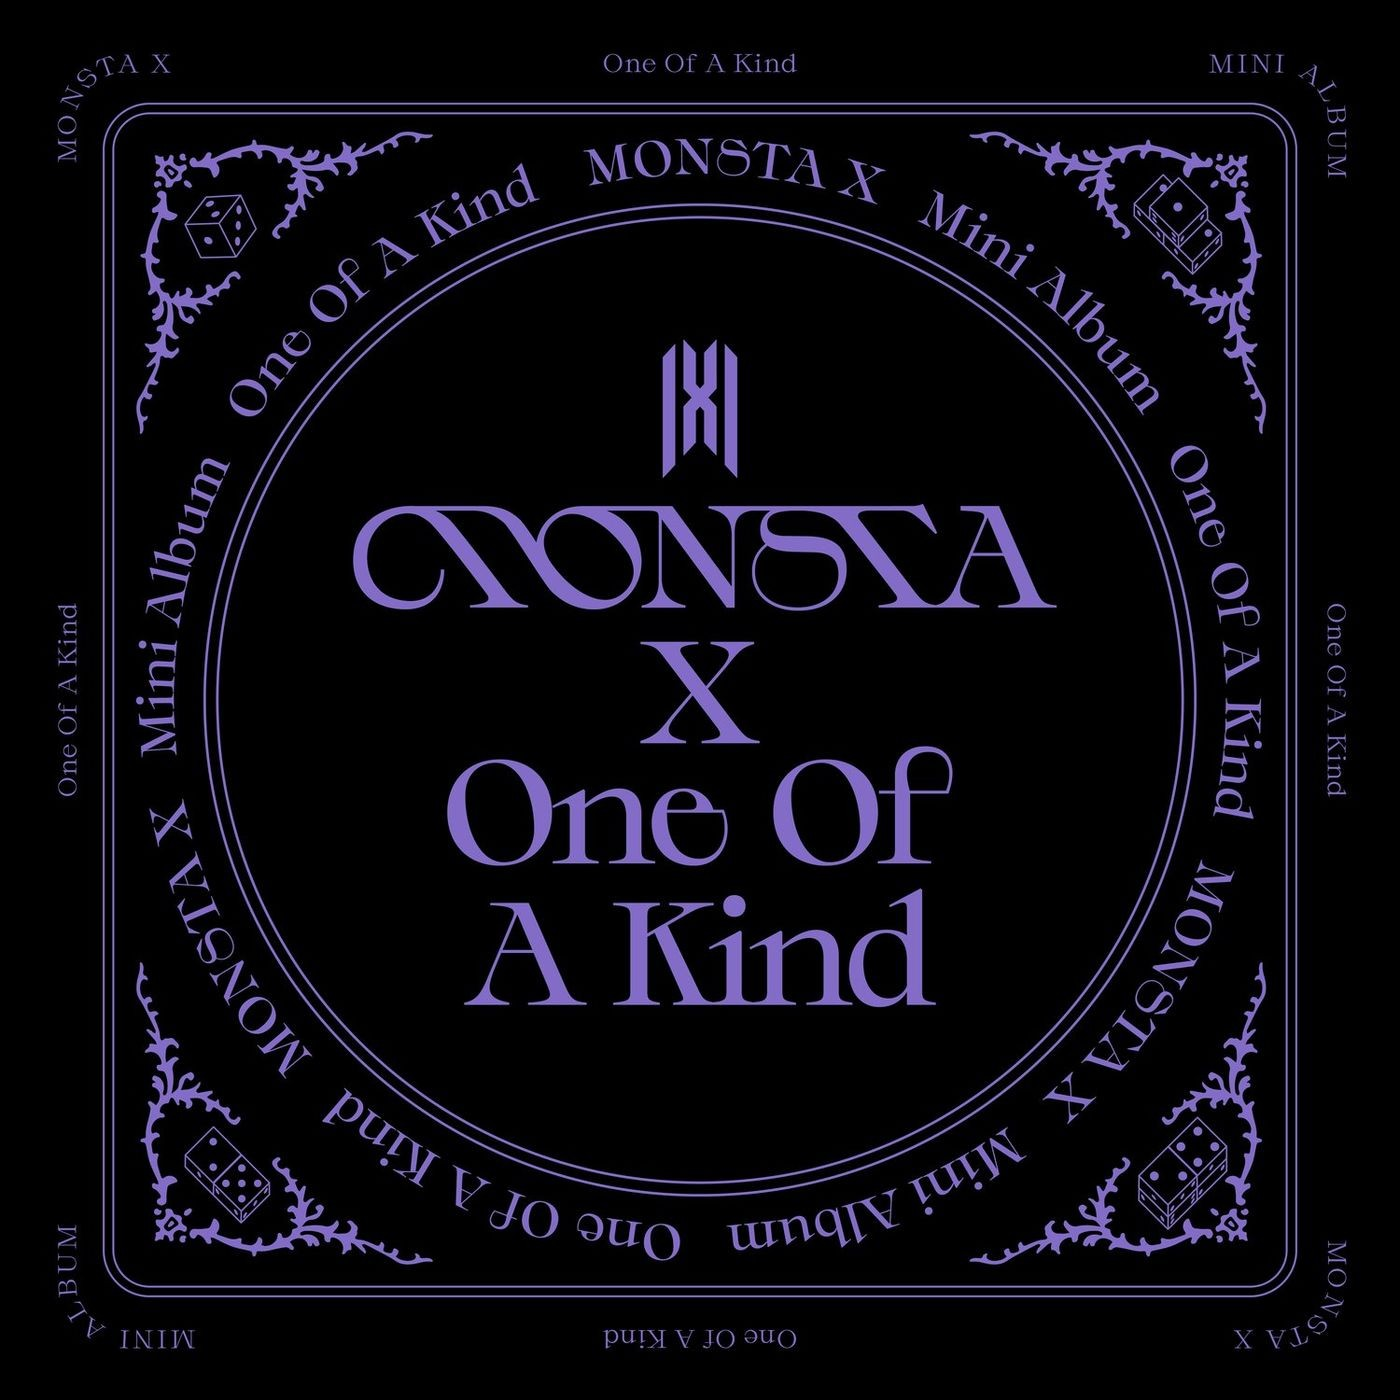 MONSTA X – One of a Kind [FLAC + MP3 320 / WEB] [2021.06.01]